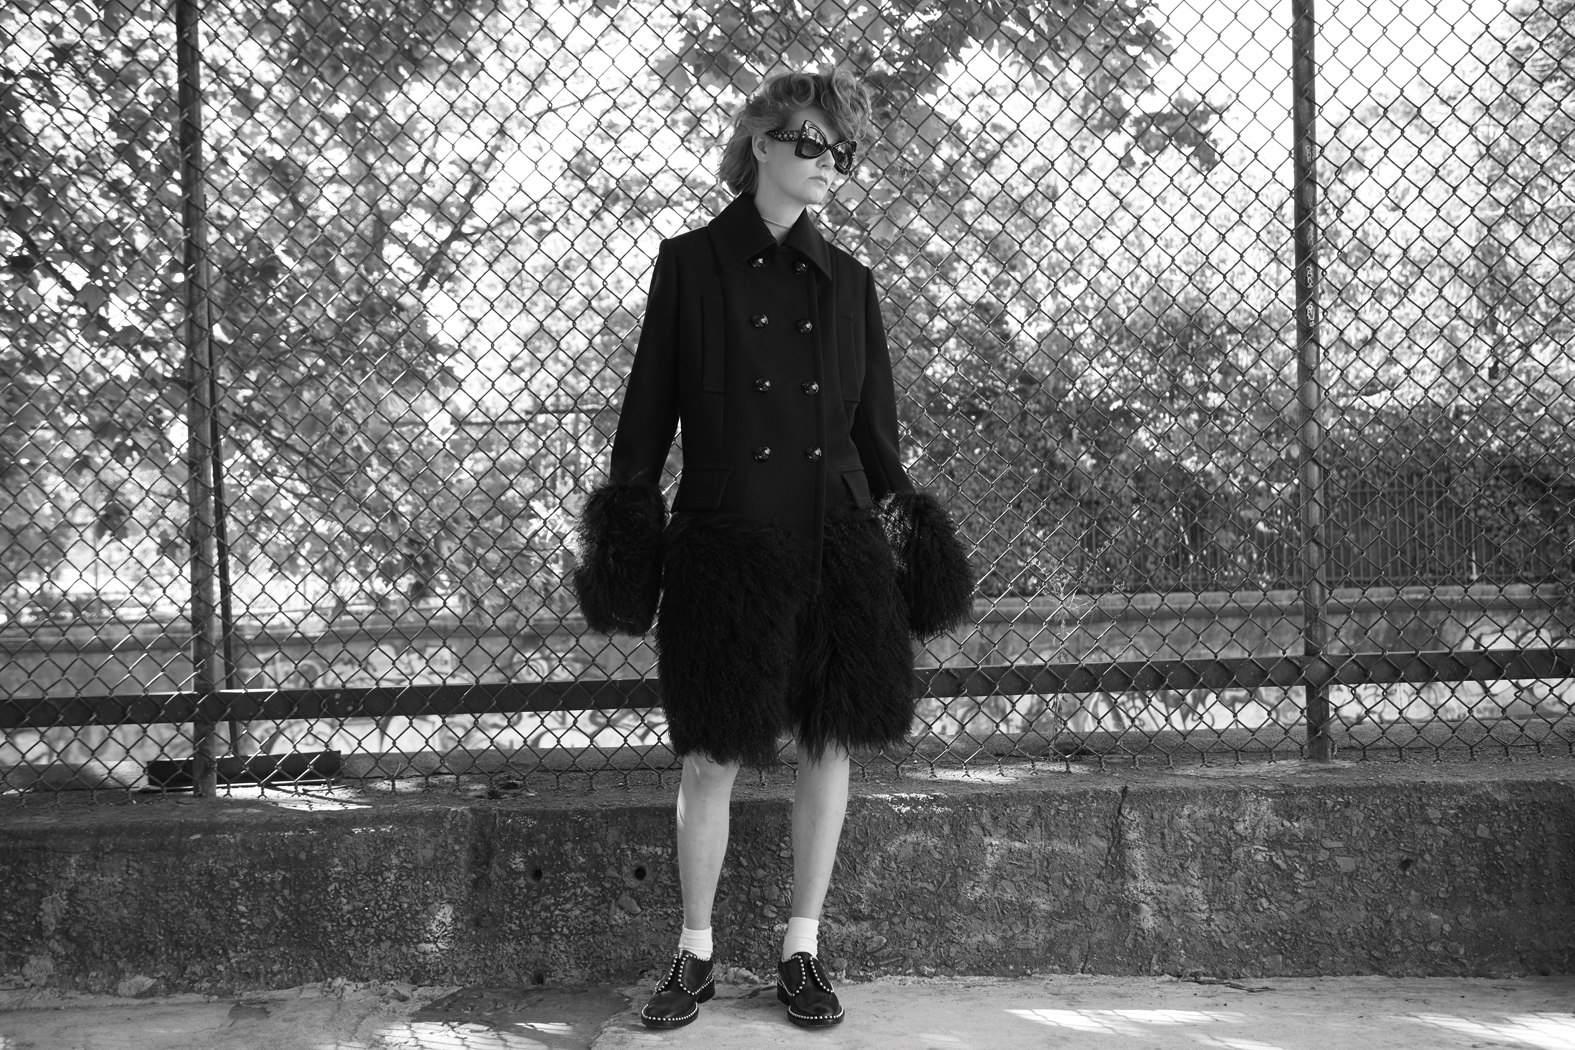 coat : SACAI sunglasses: ROBERTO CAVALLI  shoes : ALEXANDER WANG  courtesy of  ALBRIGHT FASHION LIBRARY  socks : FOGAL